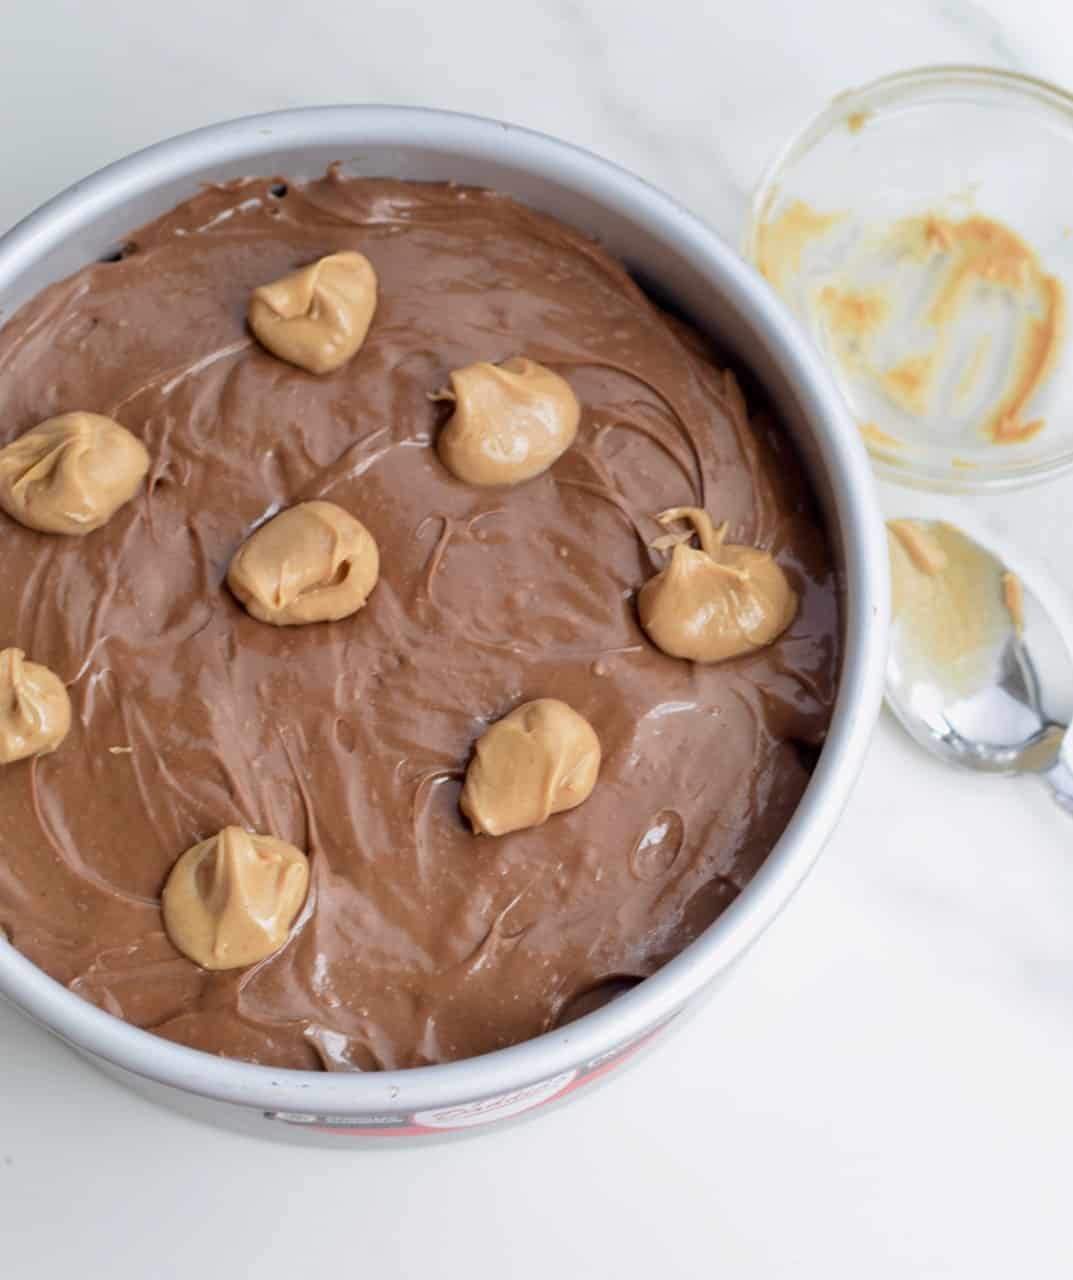 Tiny dollops of peanut butter dolloped on top of chocolate cheesecake batter in a cake pan; spoon with peanut butter on it on surface